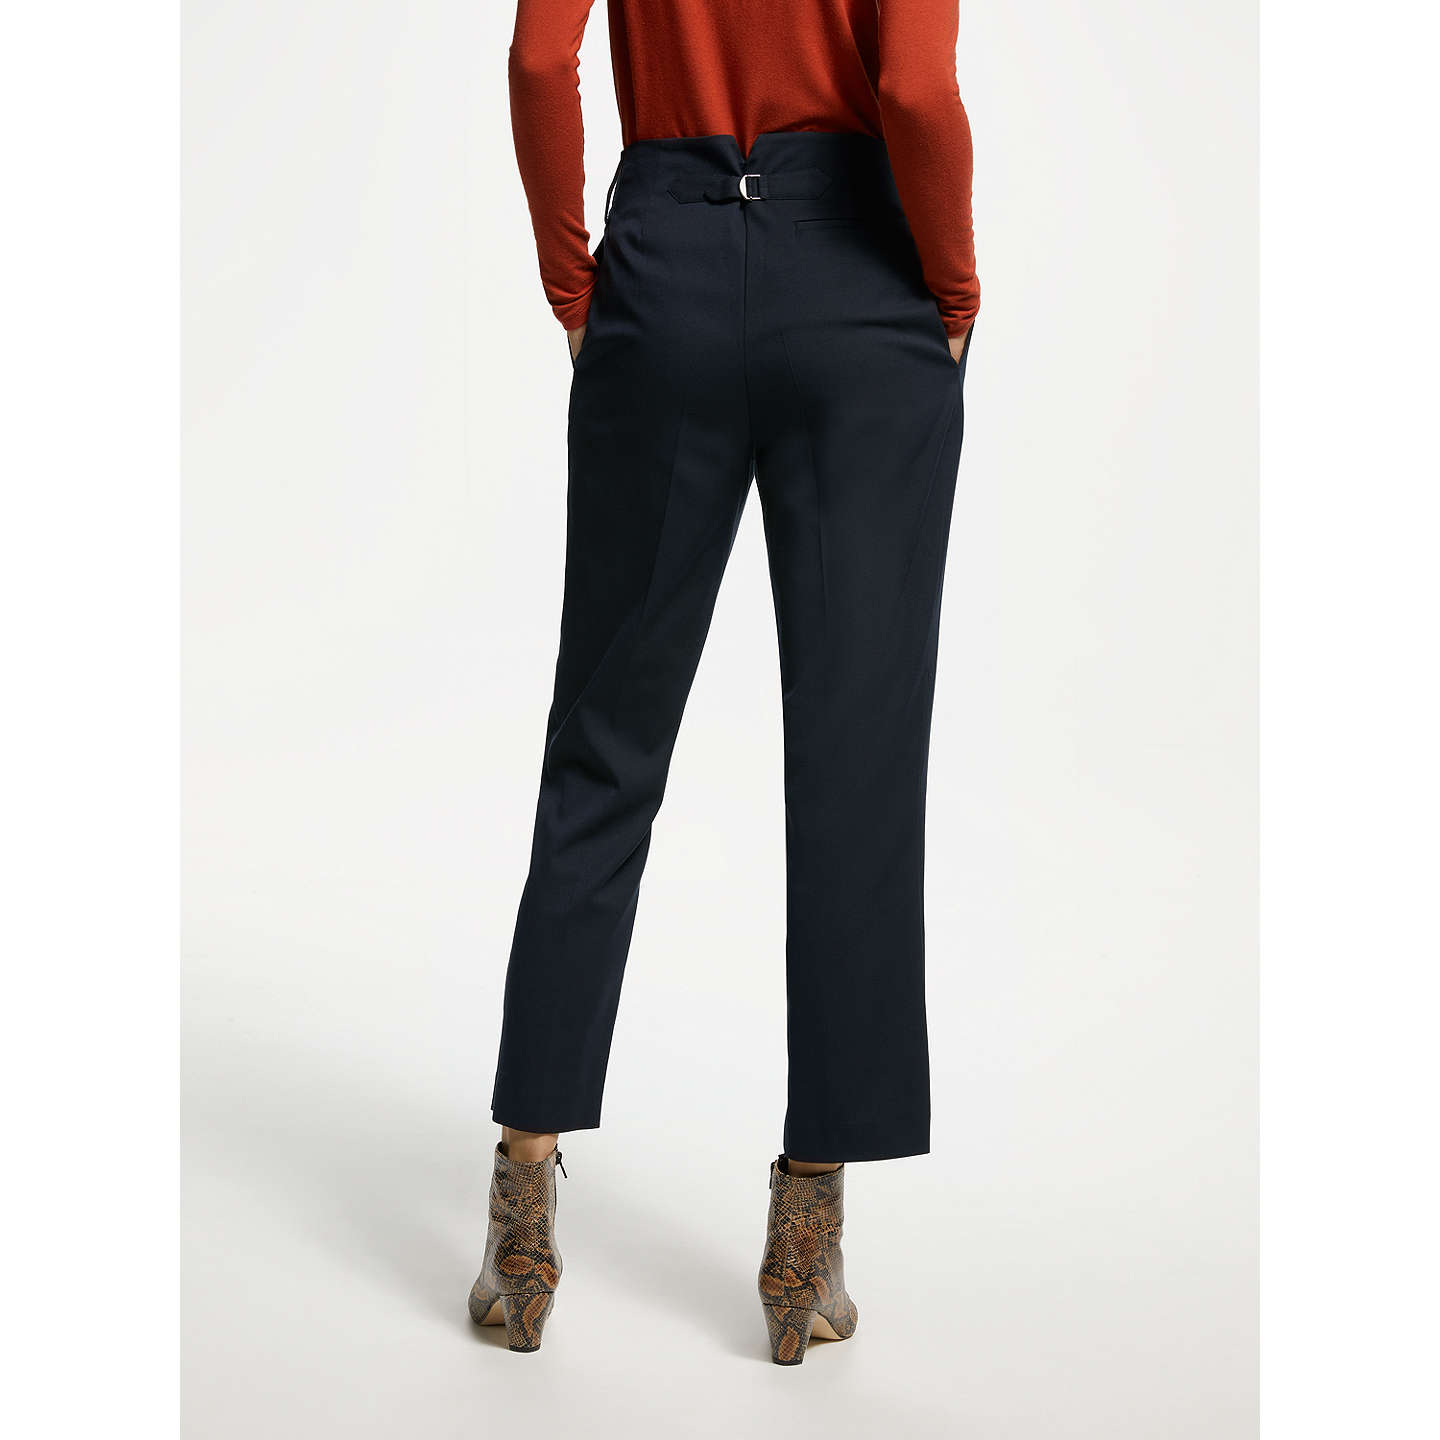 BuyFinery Oliver Peg Trousers, Navy, 8 Online at johnlewis.com